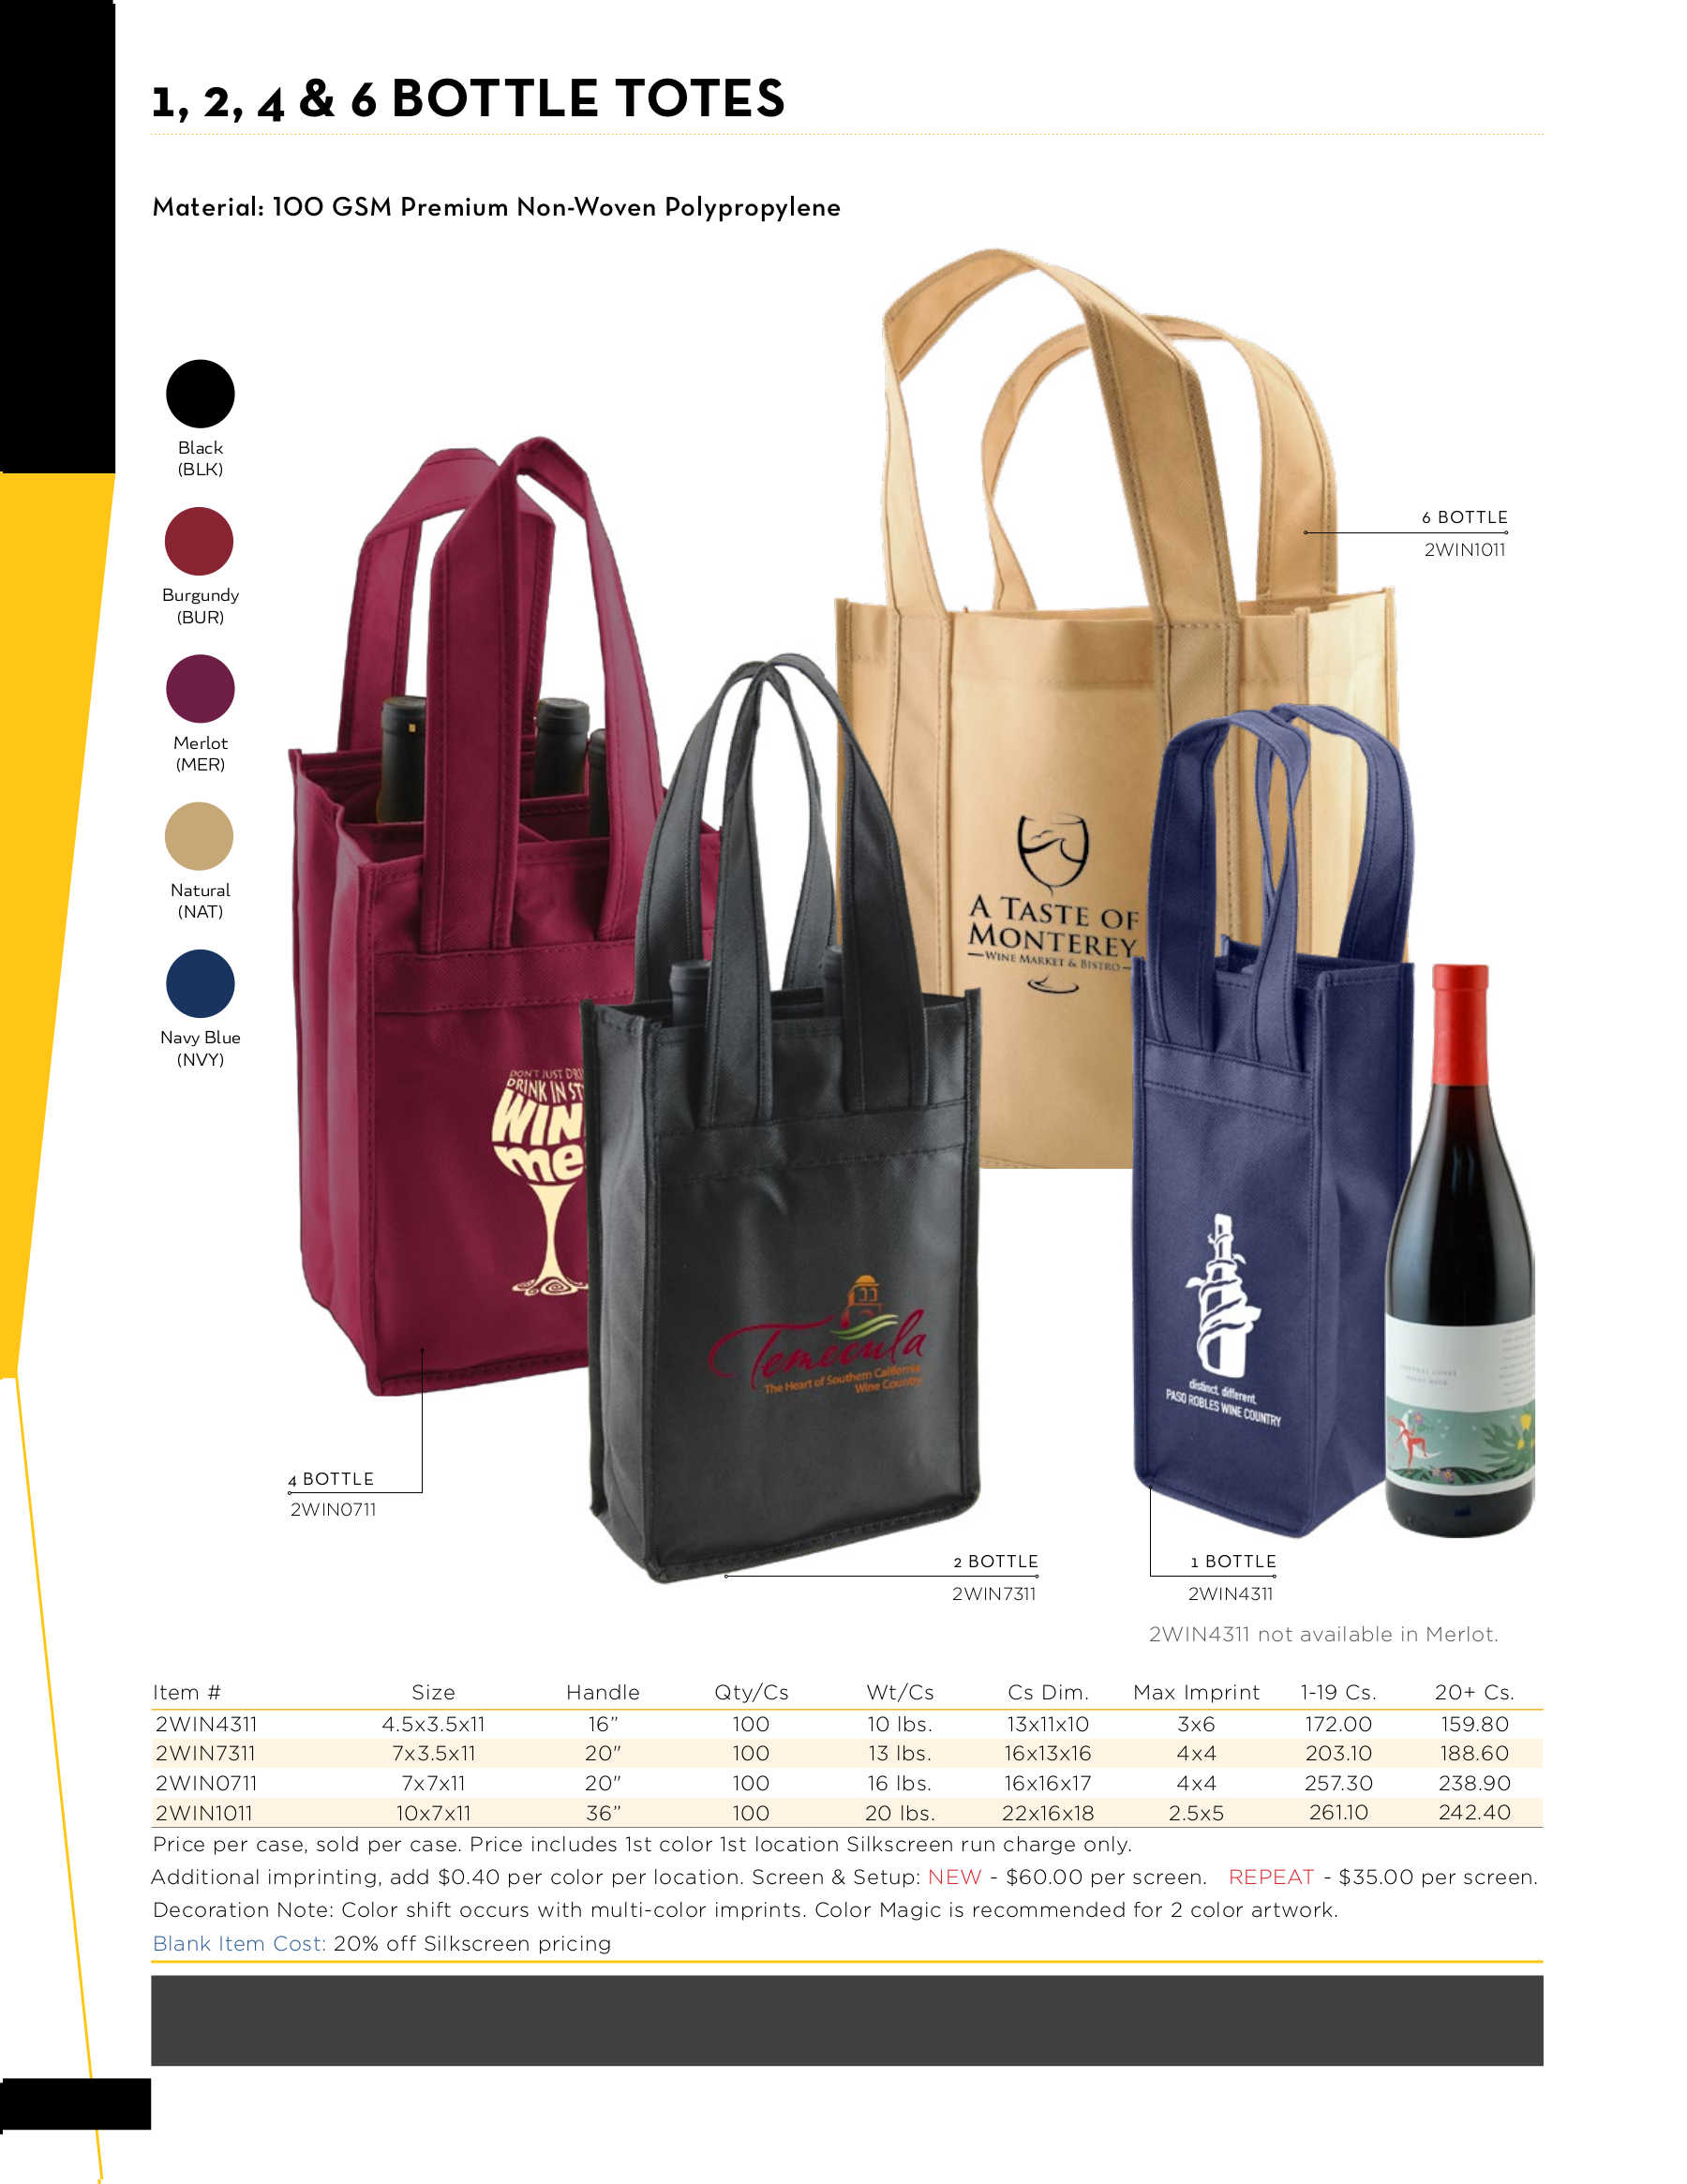 1, 2, 4 and 6 Bottle Wine Totes